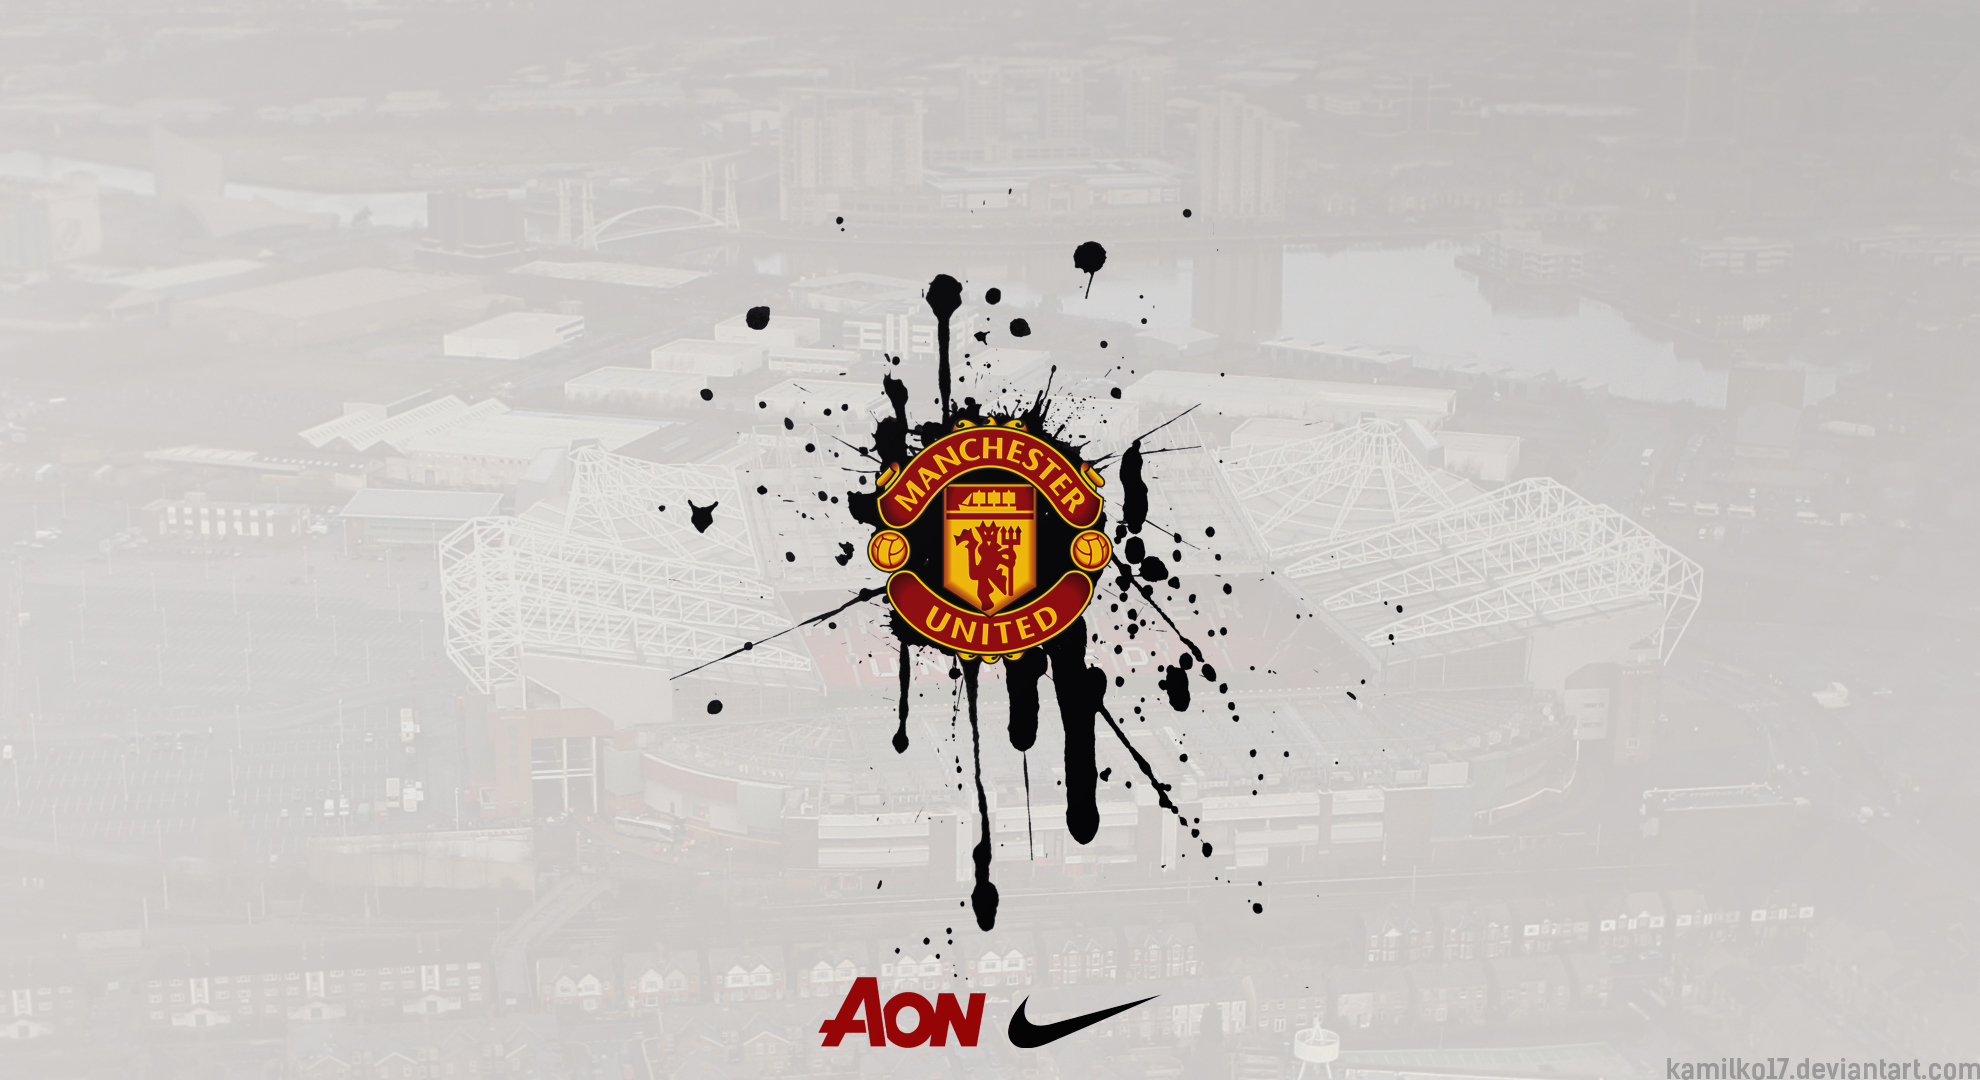 1980x1080px manchester united logo wallpaper hd 2015 wallpapersafari manchester united wallpaper logo is high definition wallpaper you can 1980x1080 voltagebd Choice Image